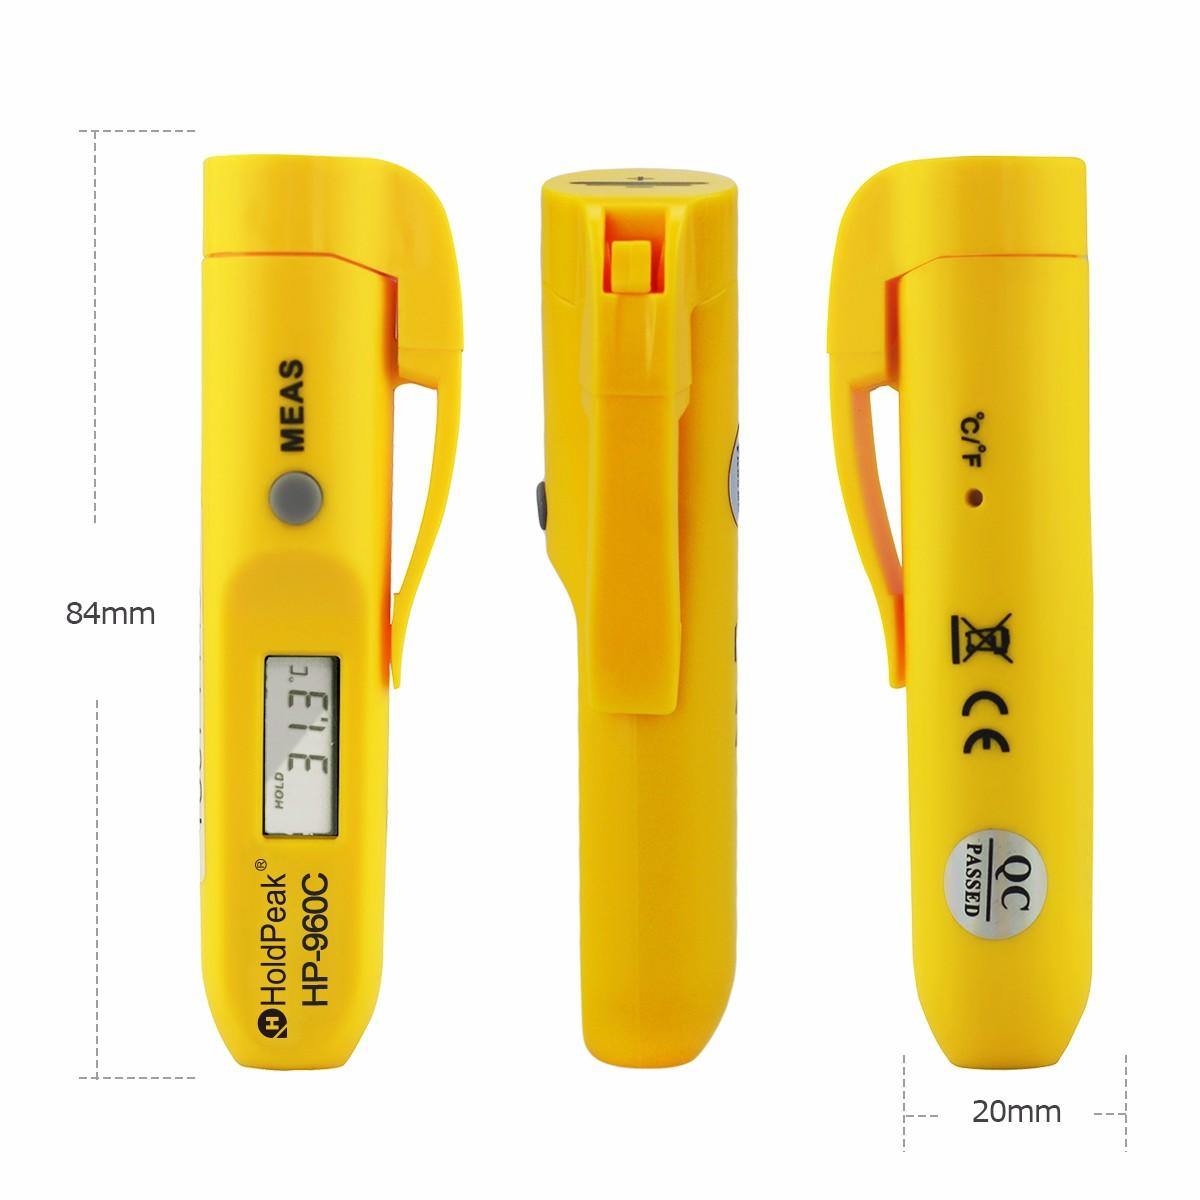 HoldPeak hp981d buy non contact thermometer manufacturers for inspection-2